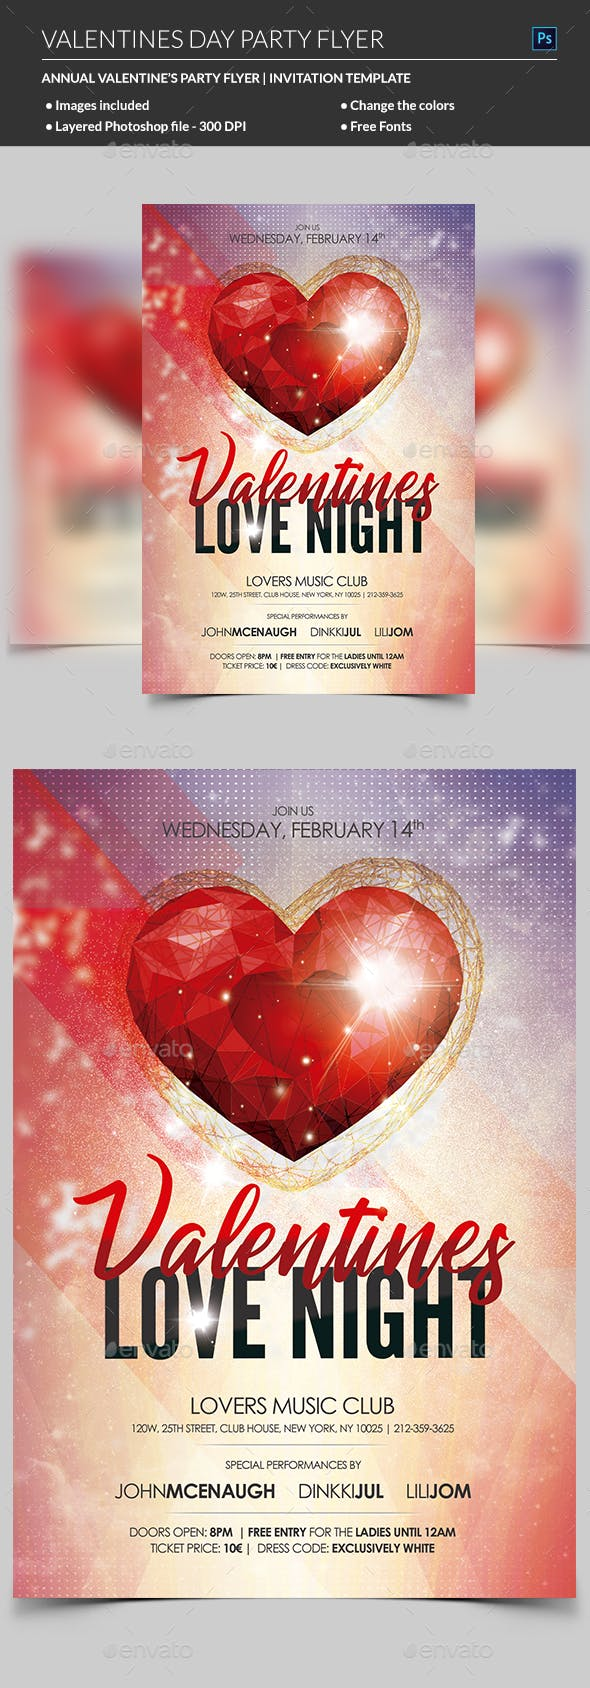 Valentines Day Flyer By Madridnyc Graphicriver